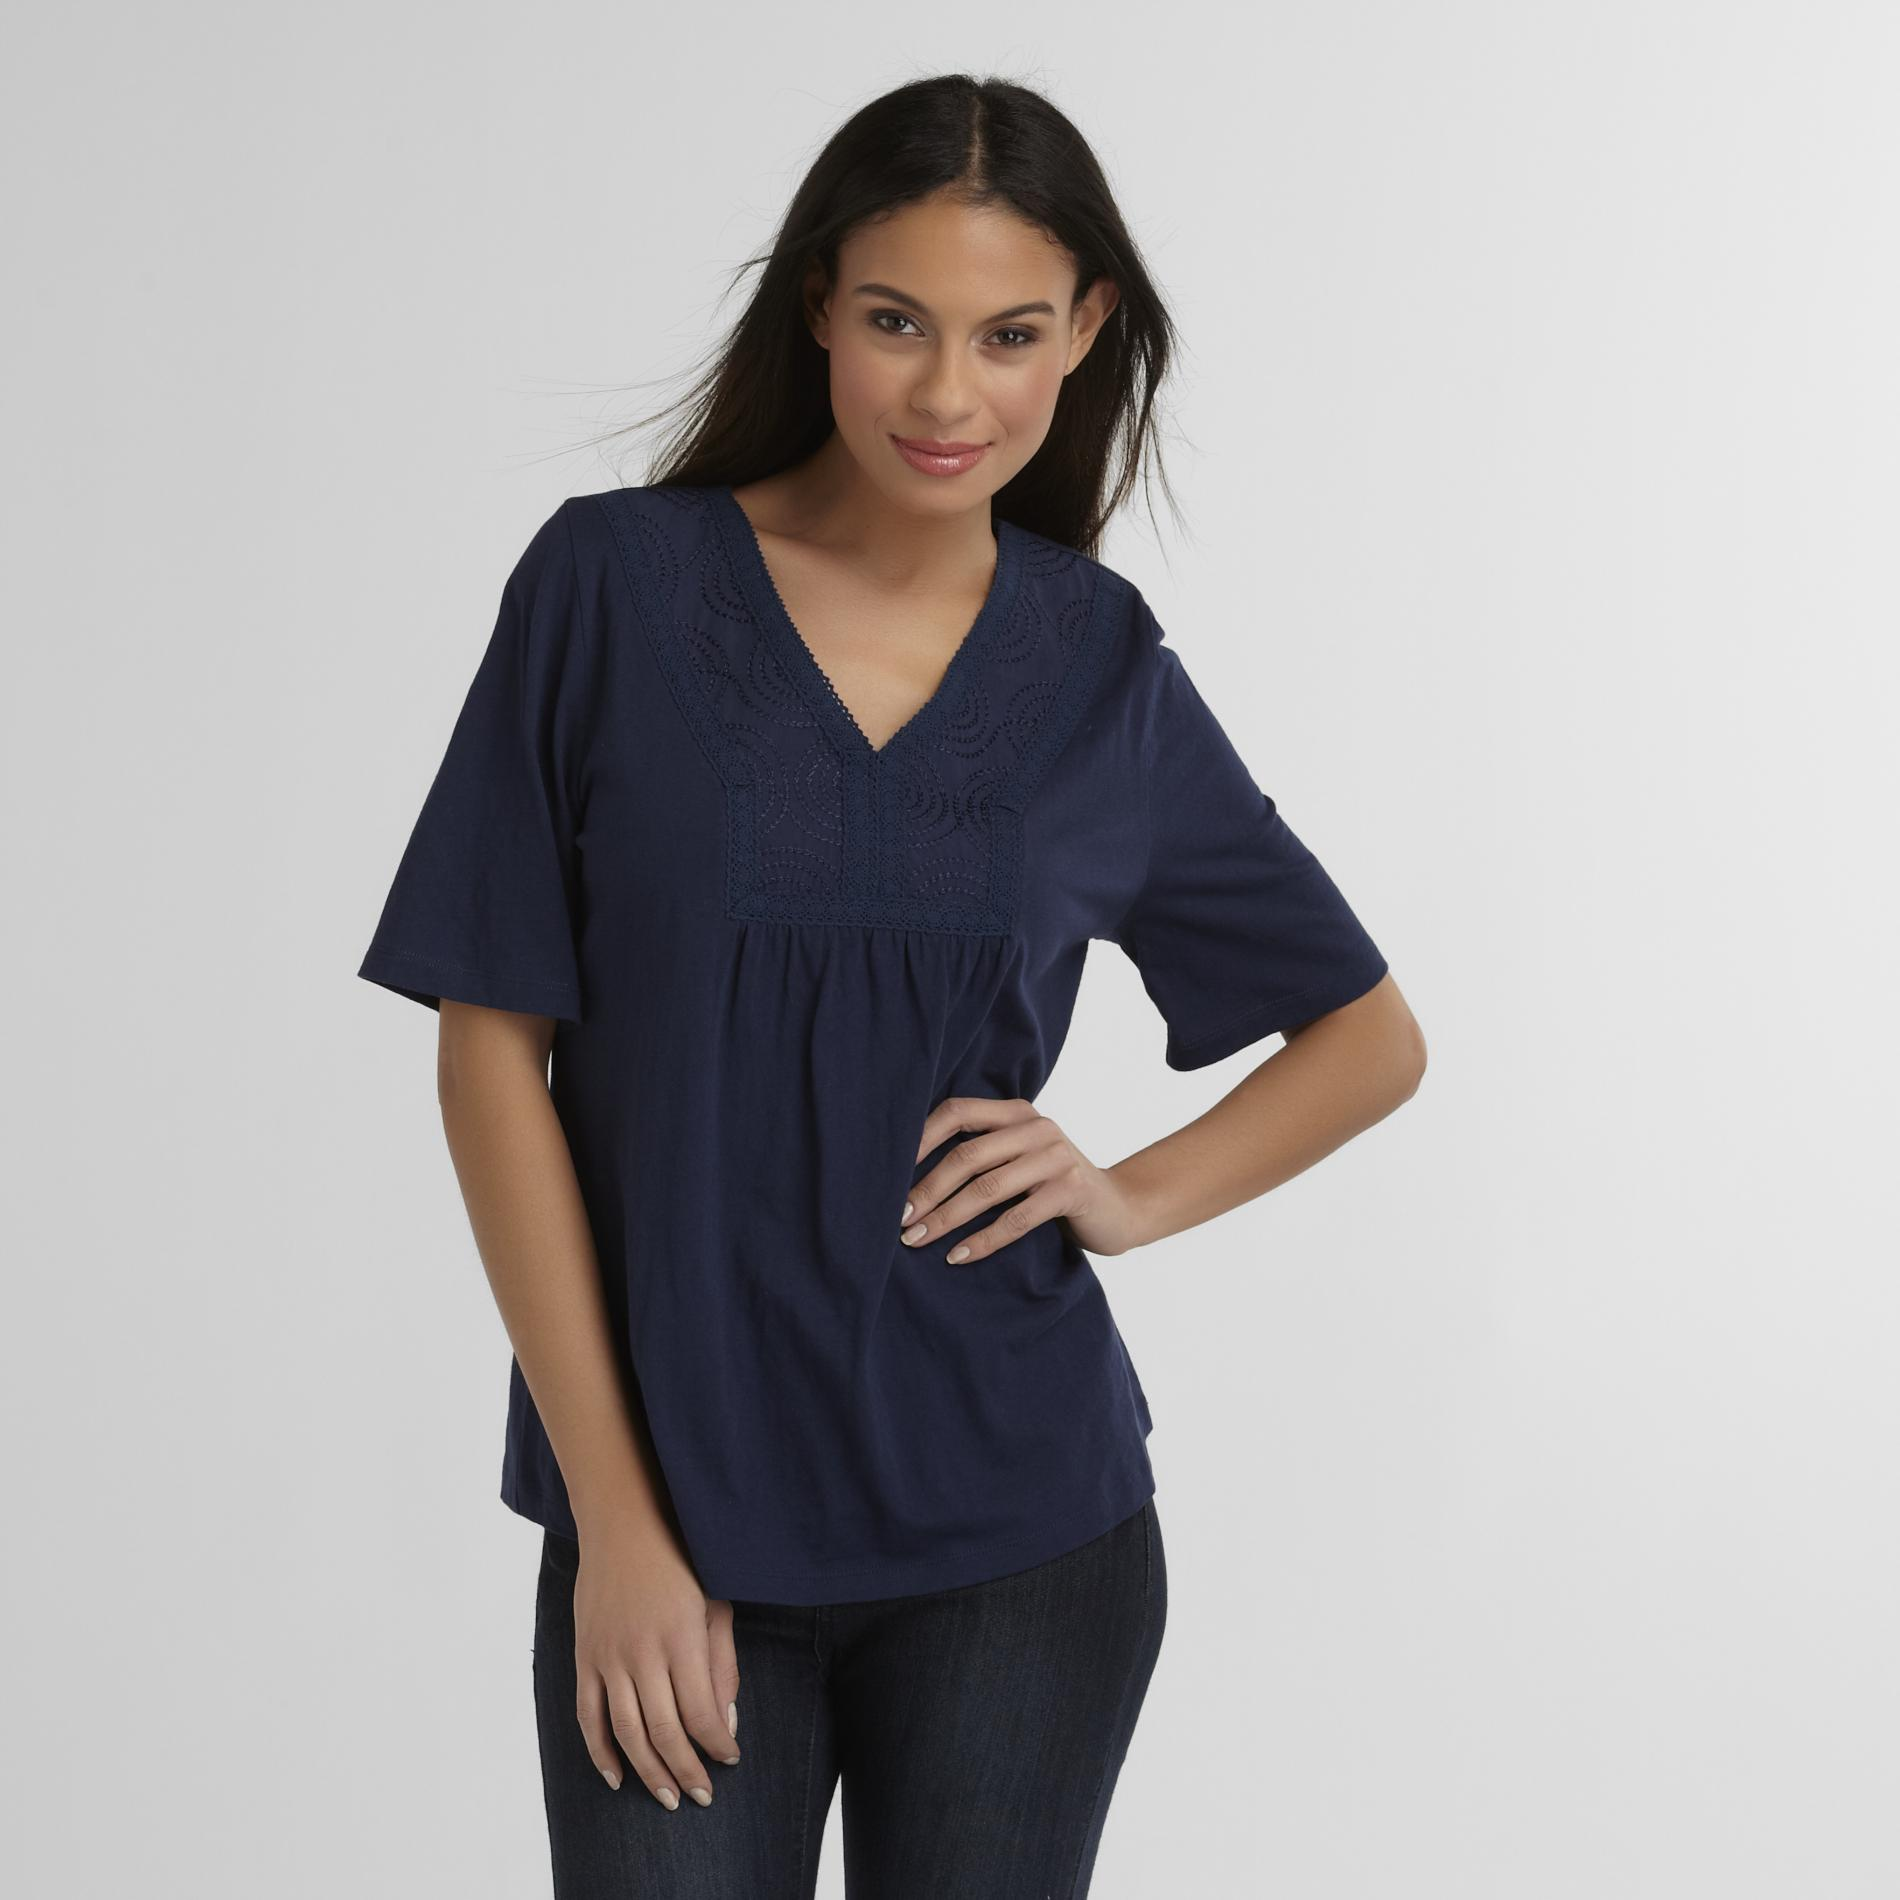 Classic Elements Women's Crochet-Neck T-Shirt at Sears.com